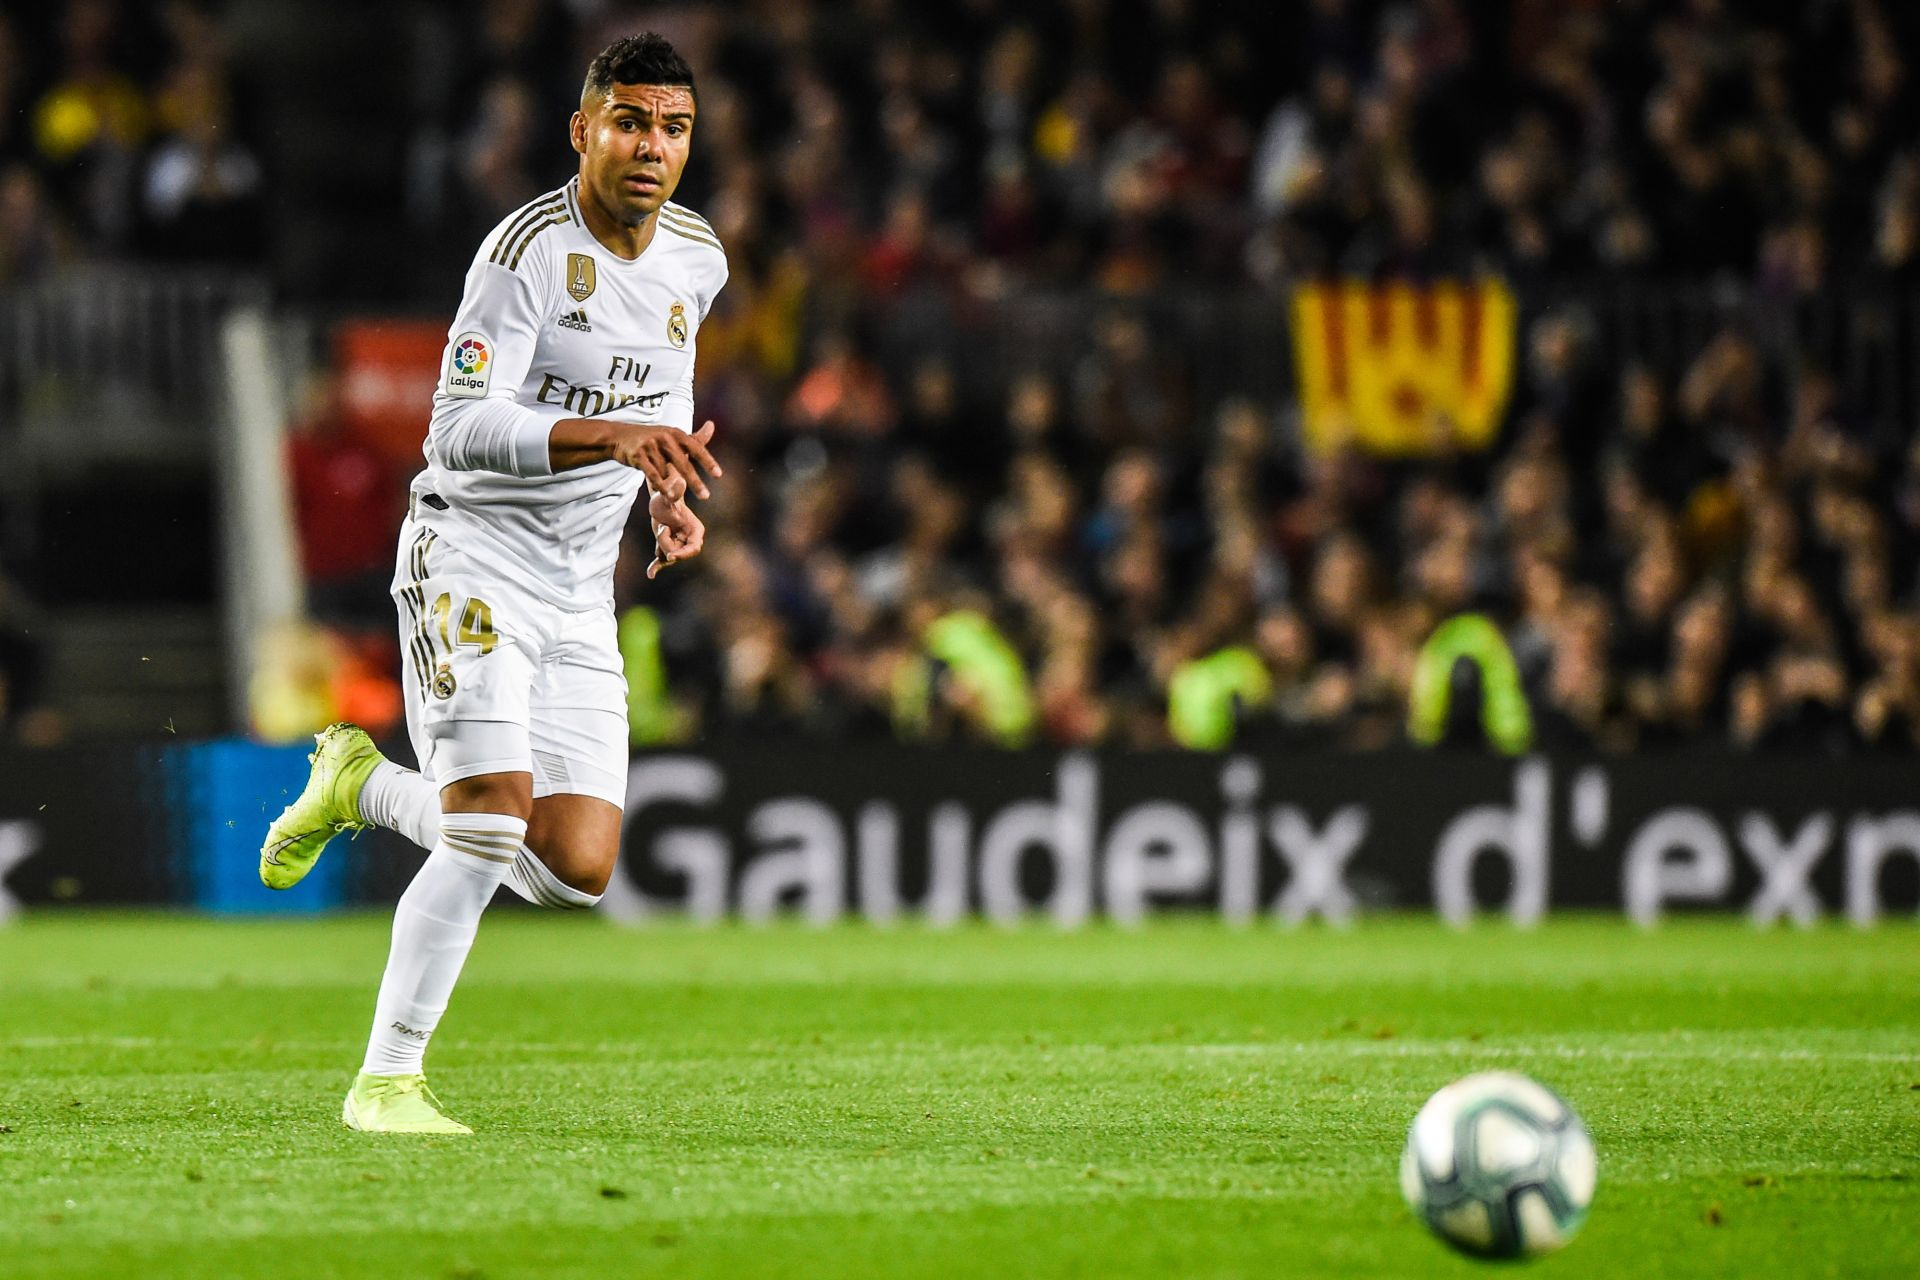 Carlos Henrique Casemiro of Real Madrid during the Liga match between Barcelone and Real Madrid at Camp Nou on December 18, 2019 in Barcelona, Spain. (Photo by Pressinphoto/Icon Sport) LIGA HISZPANSKA PILKA NOZNA SEZON 2019/2020 FOT. ICON SPORT/NEWSPIX.PL POLAND ONLY! --- Newspix.pl *** Local Caption *** www.newspix.pl mail us: info@newspix.pl call us: 0048 022 23 22 222 --- Polish Picture Agency by Ringier Axel Springer Poland